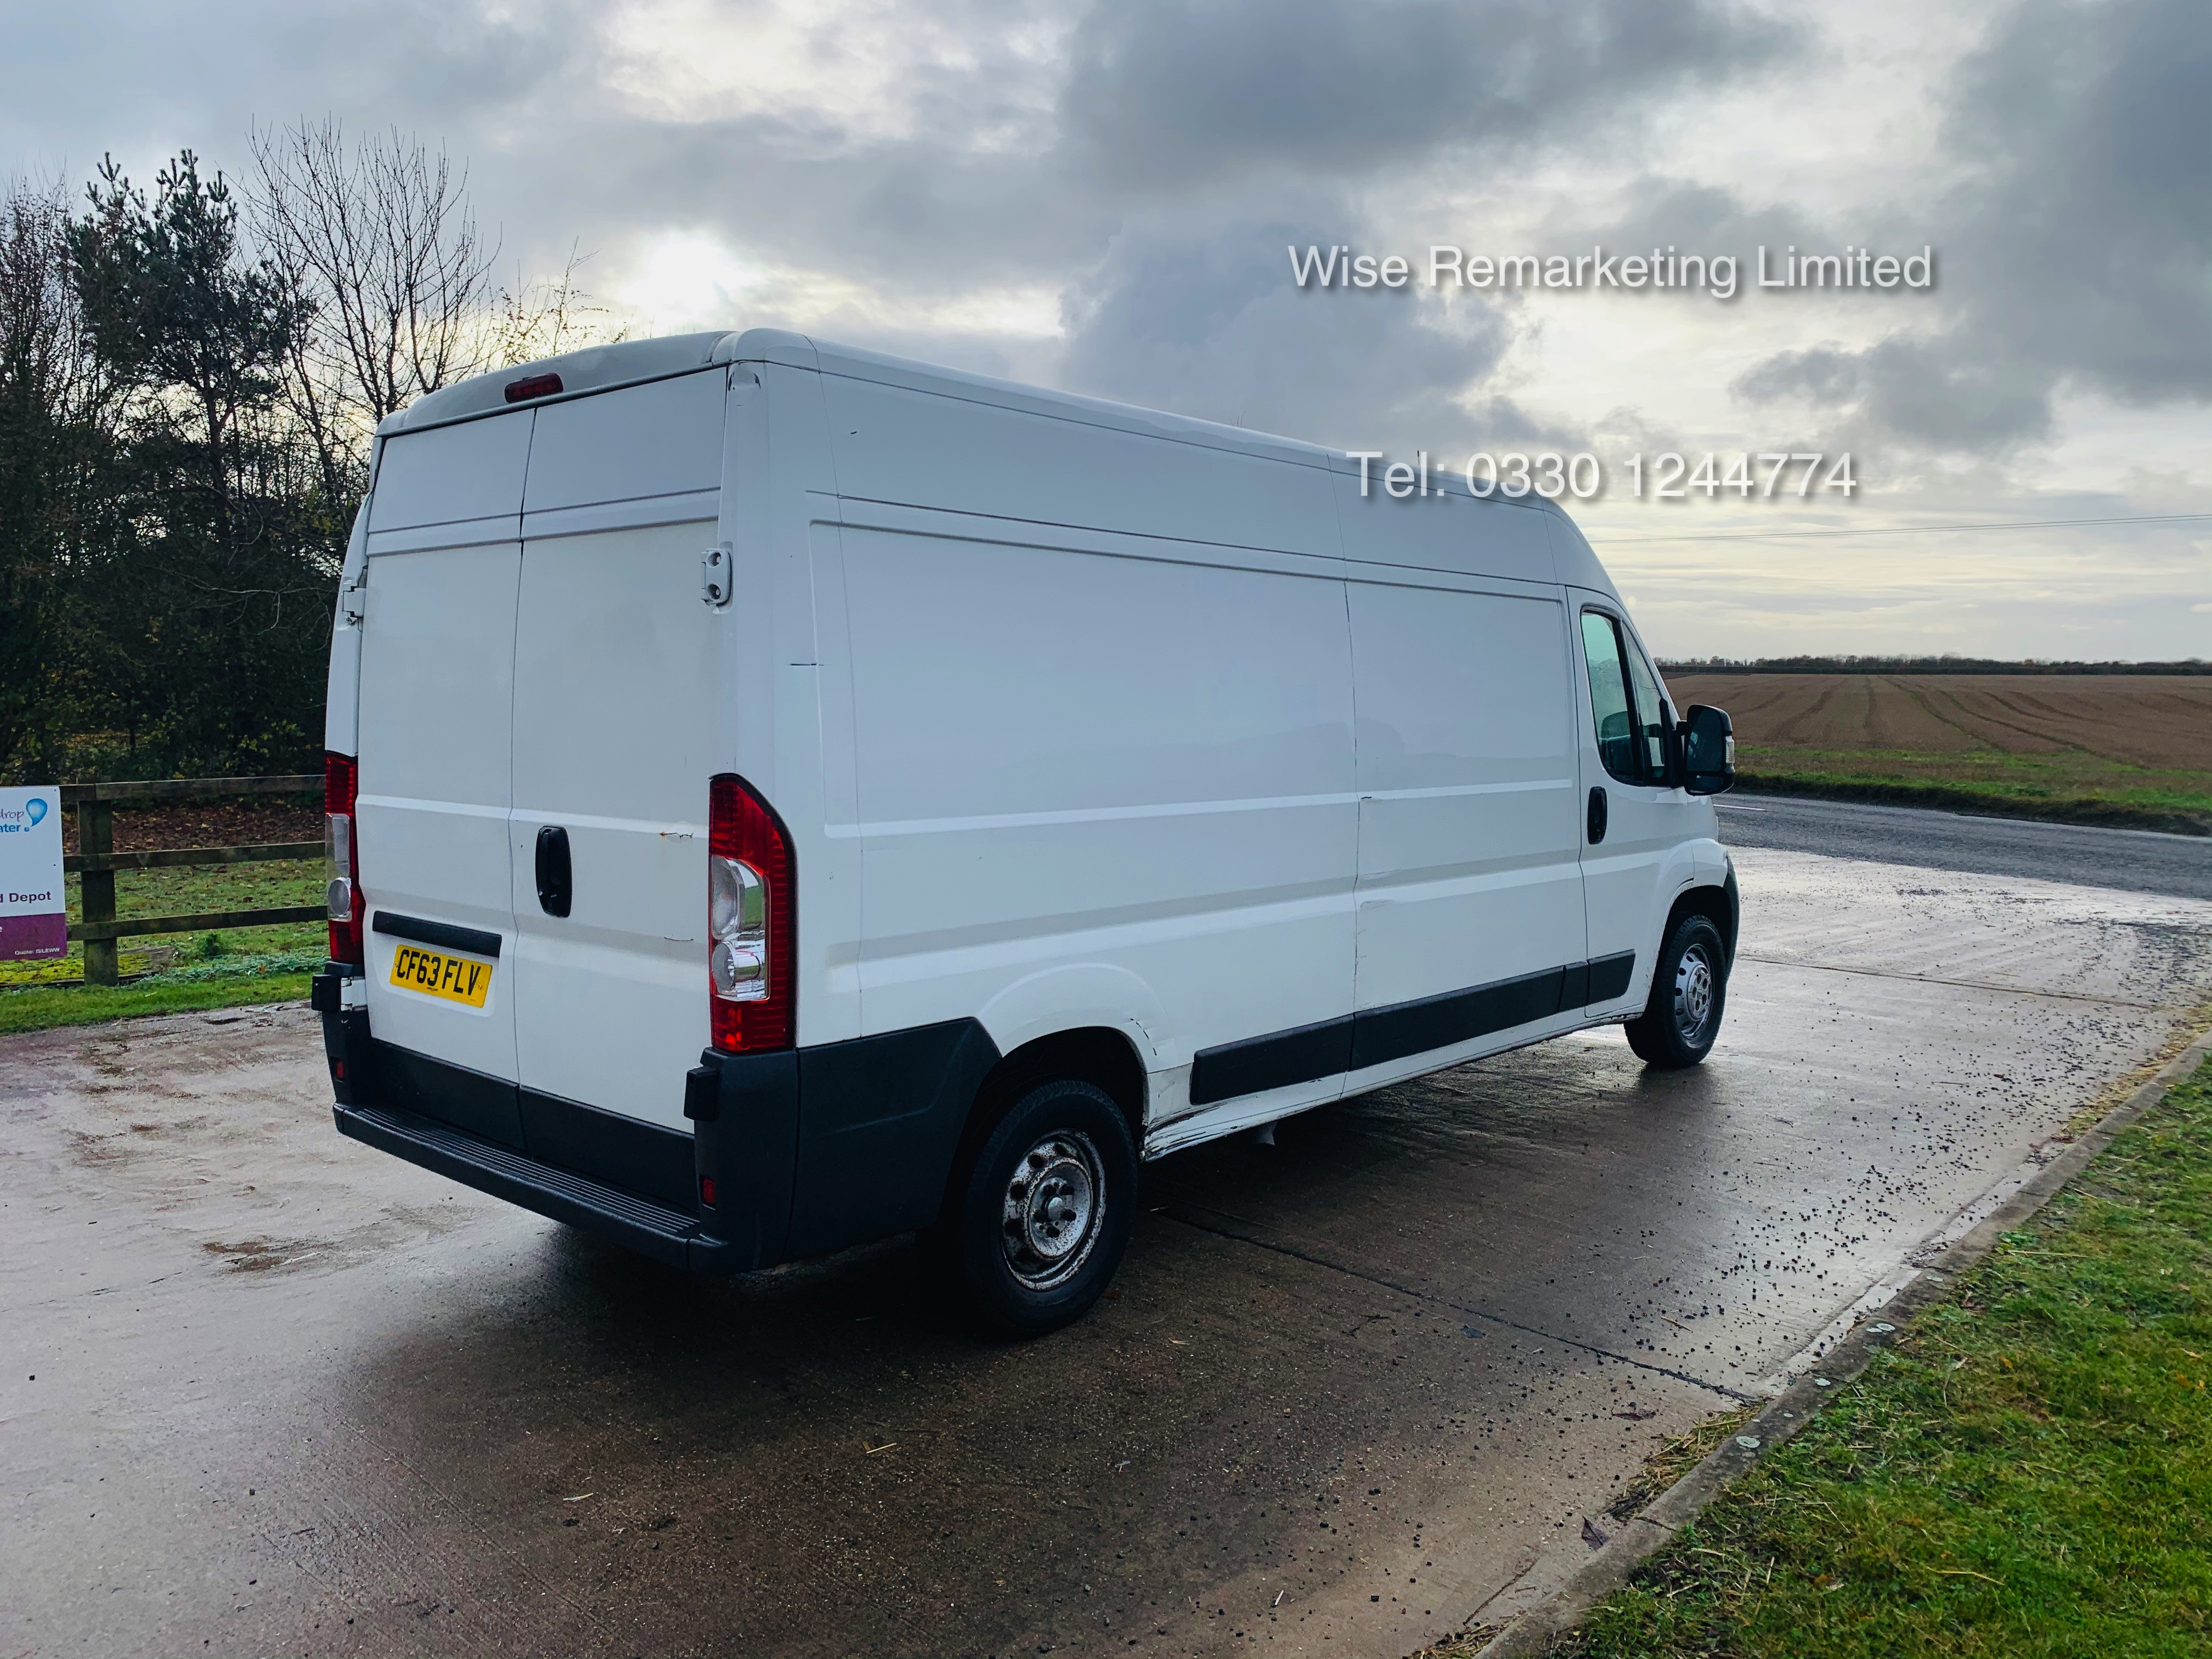 Peugeot Boxer 335 2.2 HDi Long Wheel Base( L3H2) 2014 Model - 1 Keeper From New - Image 4 of 17